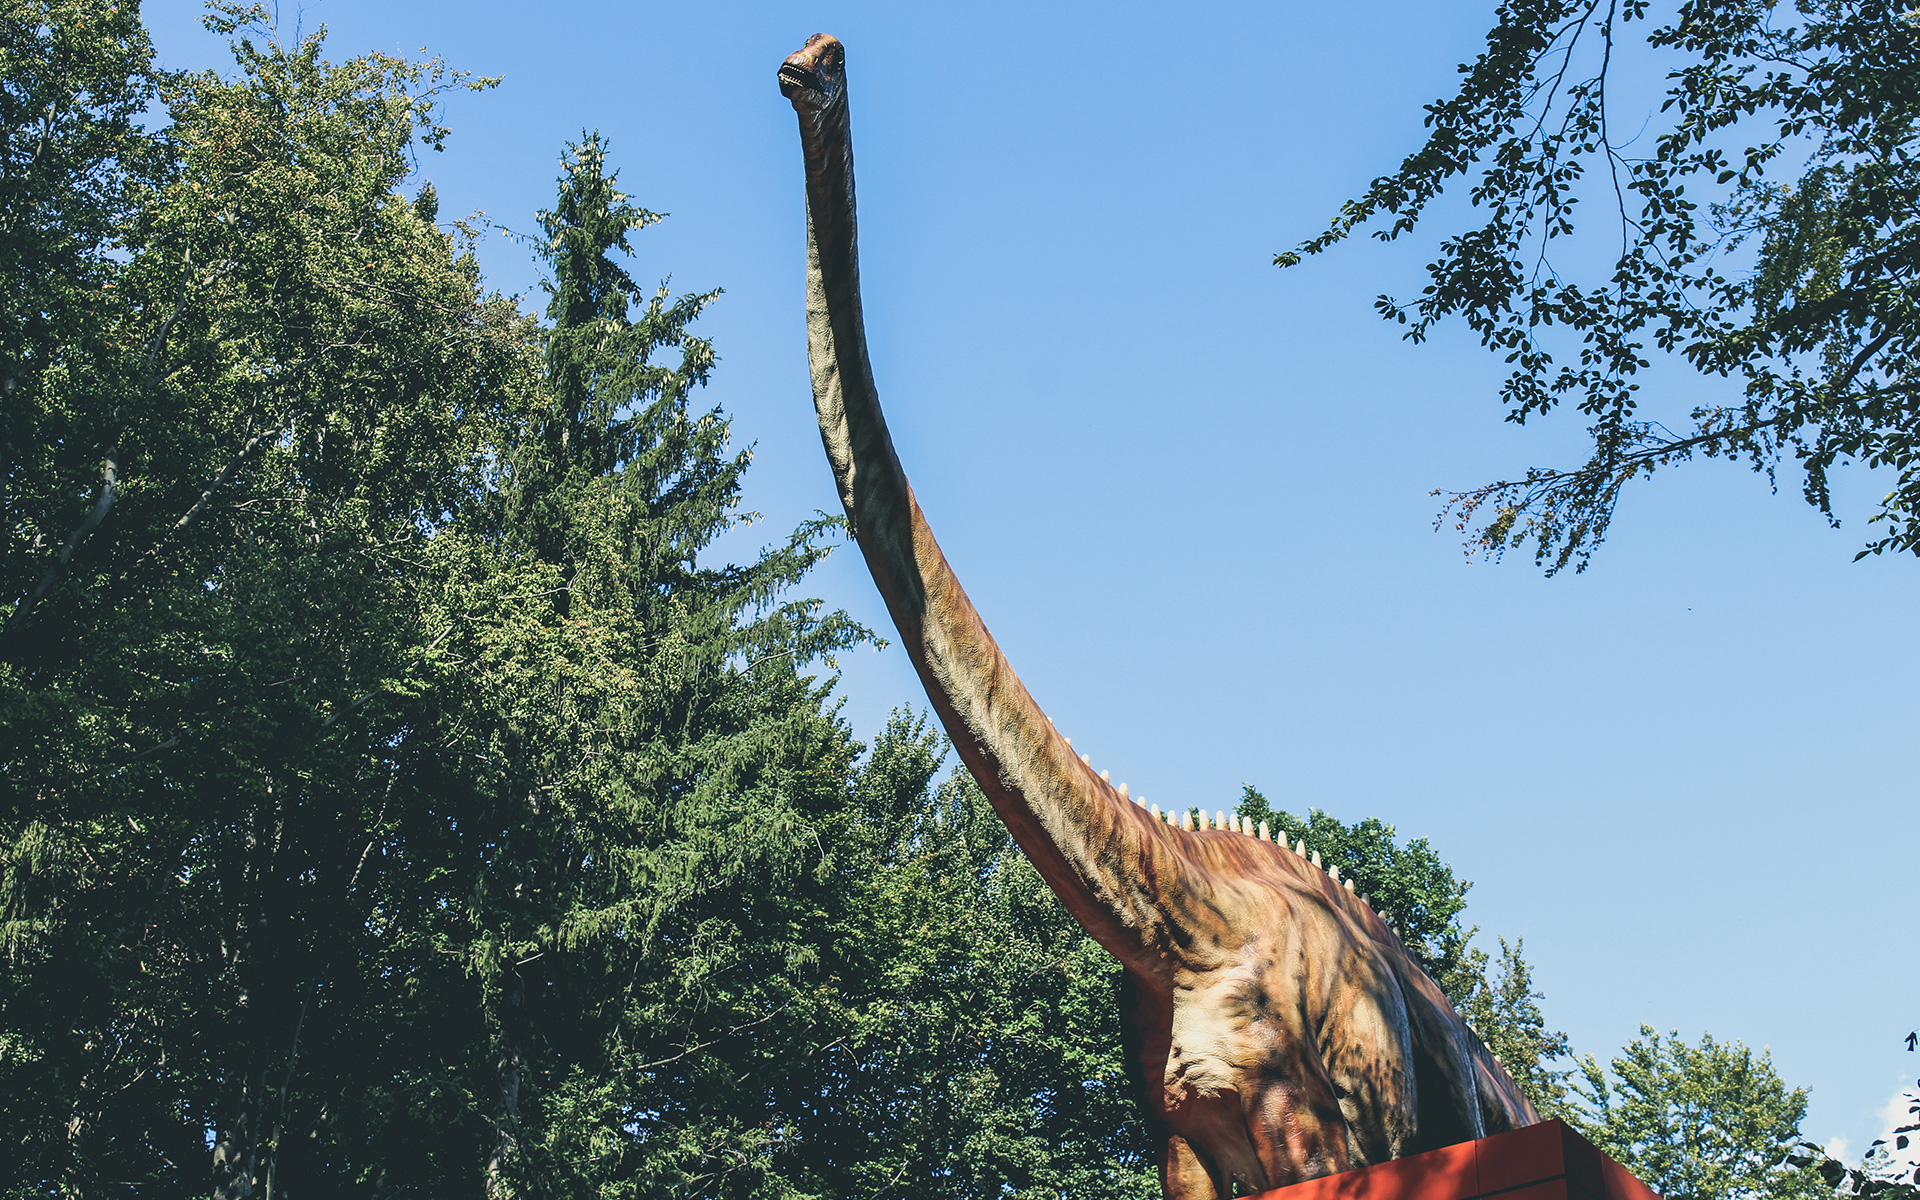 The Best Place For The Little Dinosaur Lovers